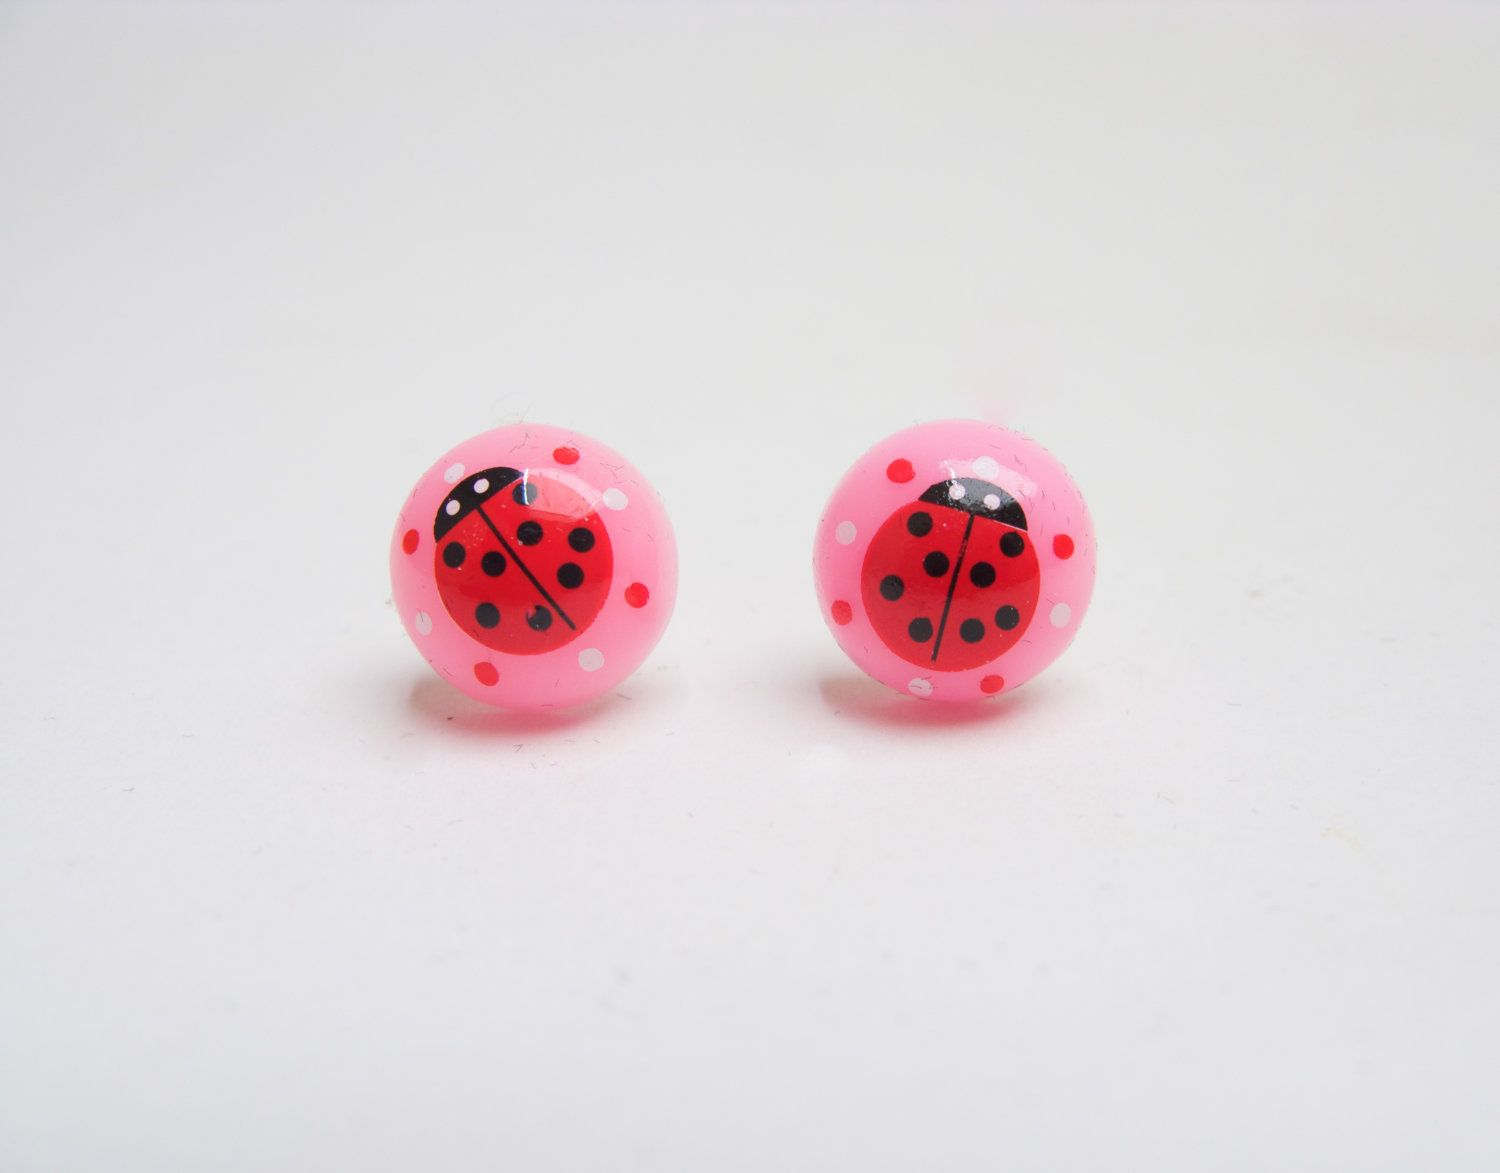 Kawaii Kids Cute Y Pink Ladybug Earrings 8 00 Via Etsy